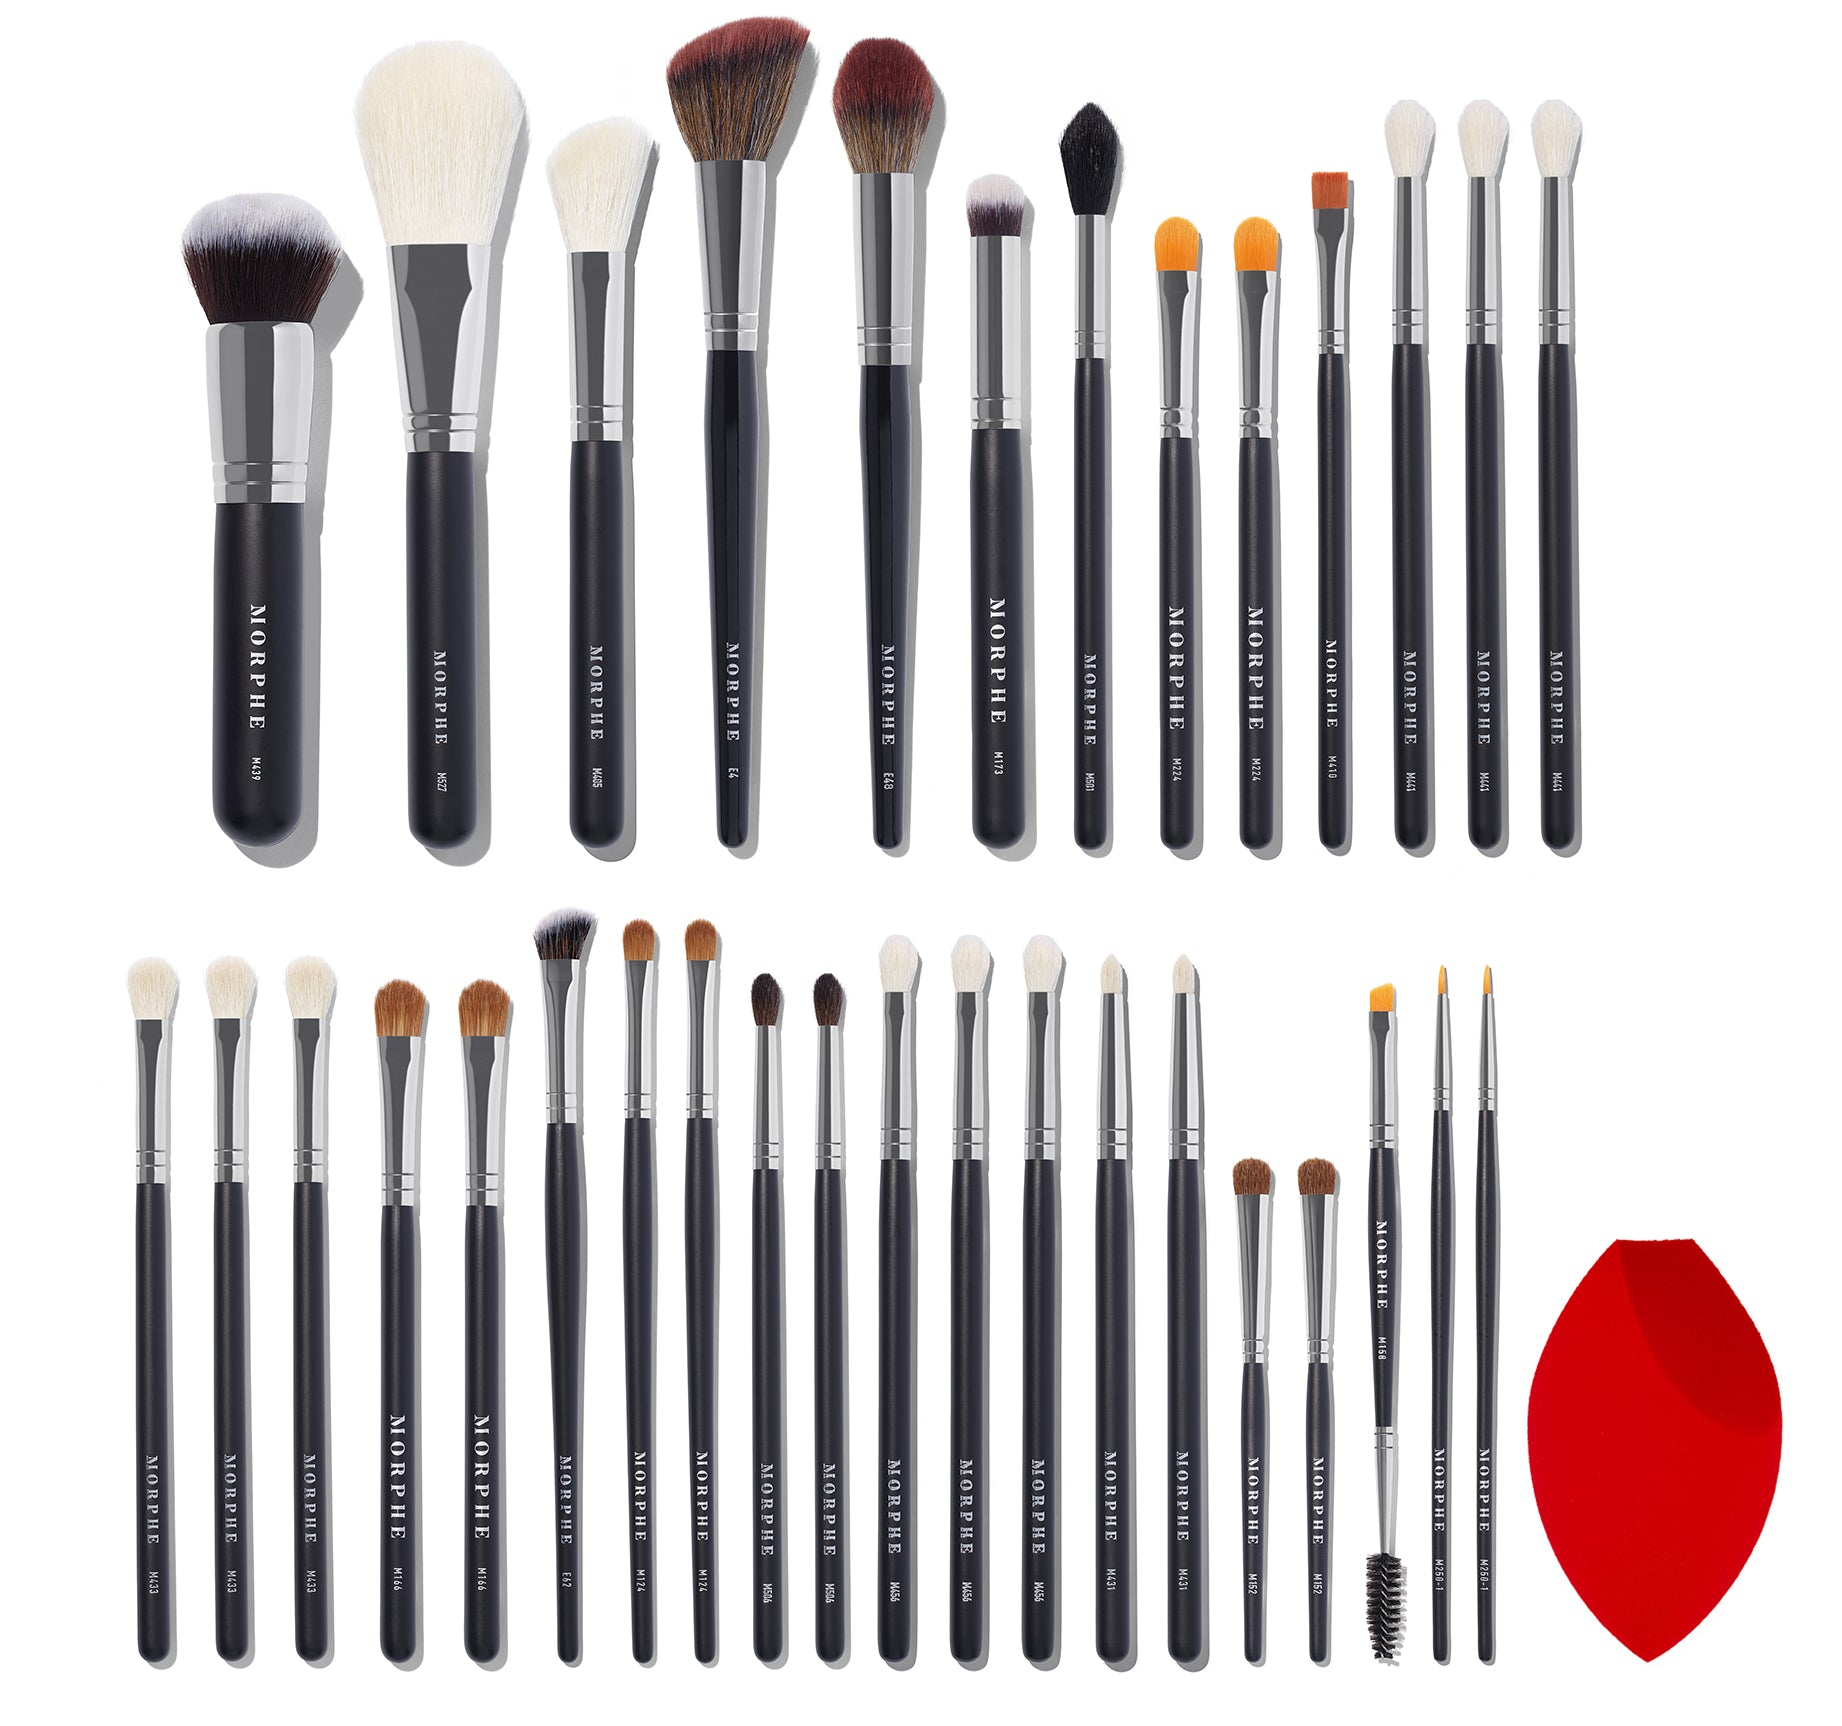 THE JAMES CHARLES BRUSH SET, view larger image